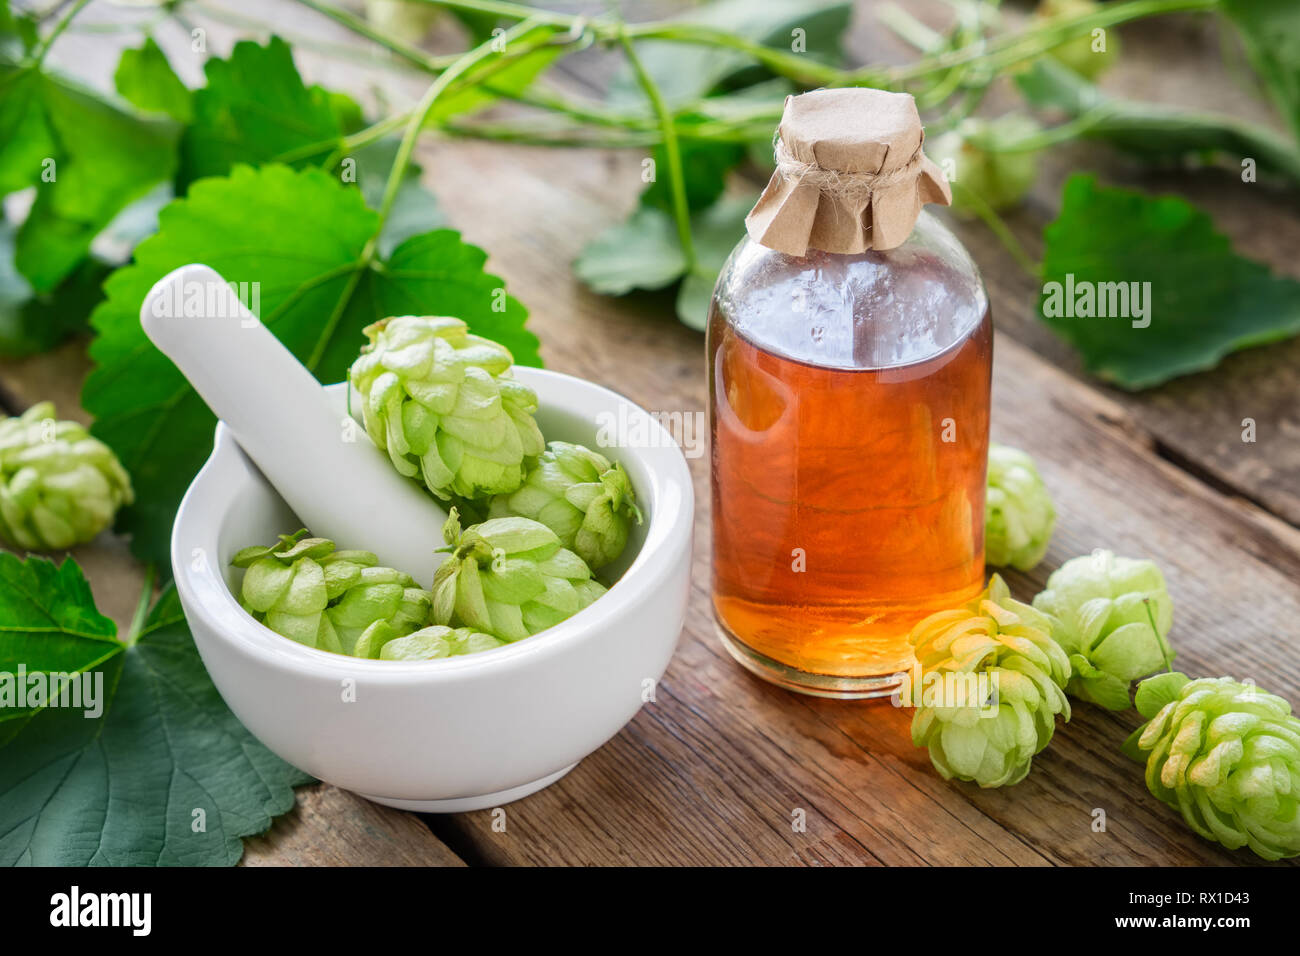 Healthy hop cones in mortar and bottle of medicinal tincture or infusion. Stock Photo